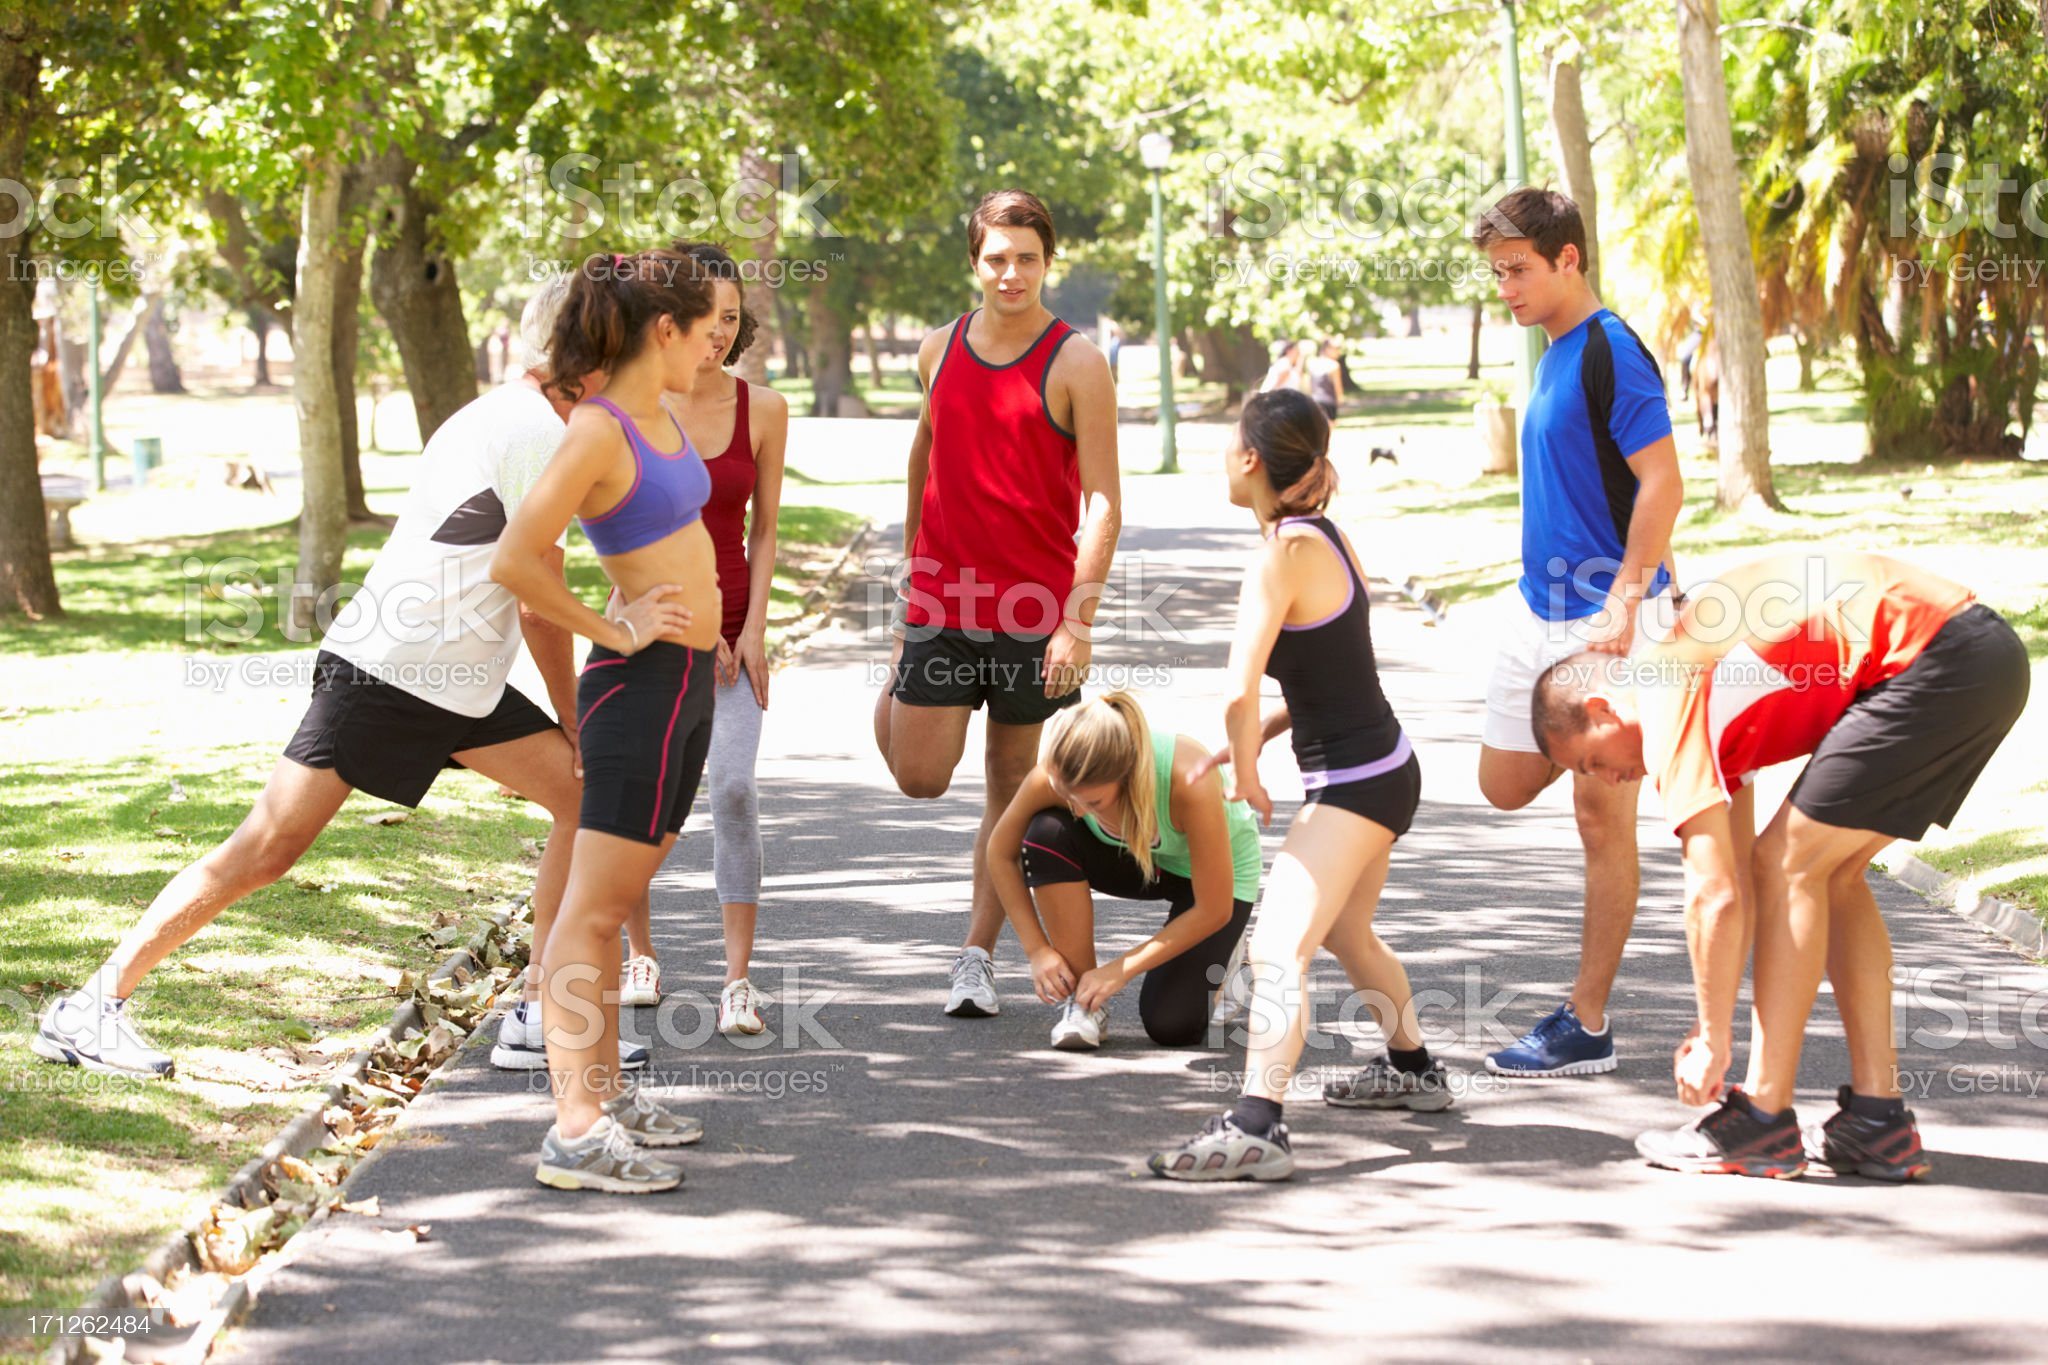 Group Of Runners Warming Up In Park royalty-free stock photo